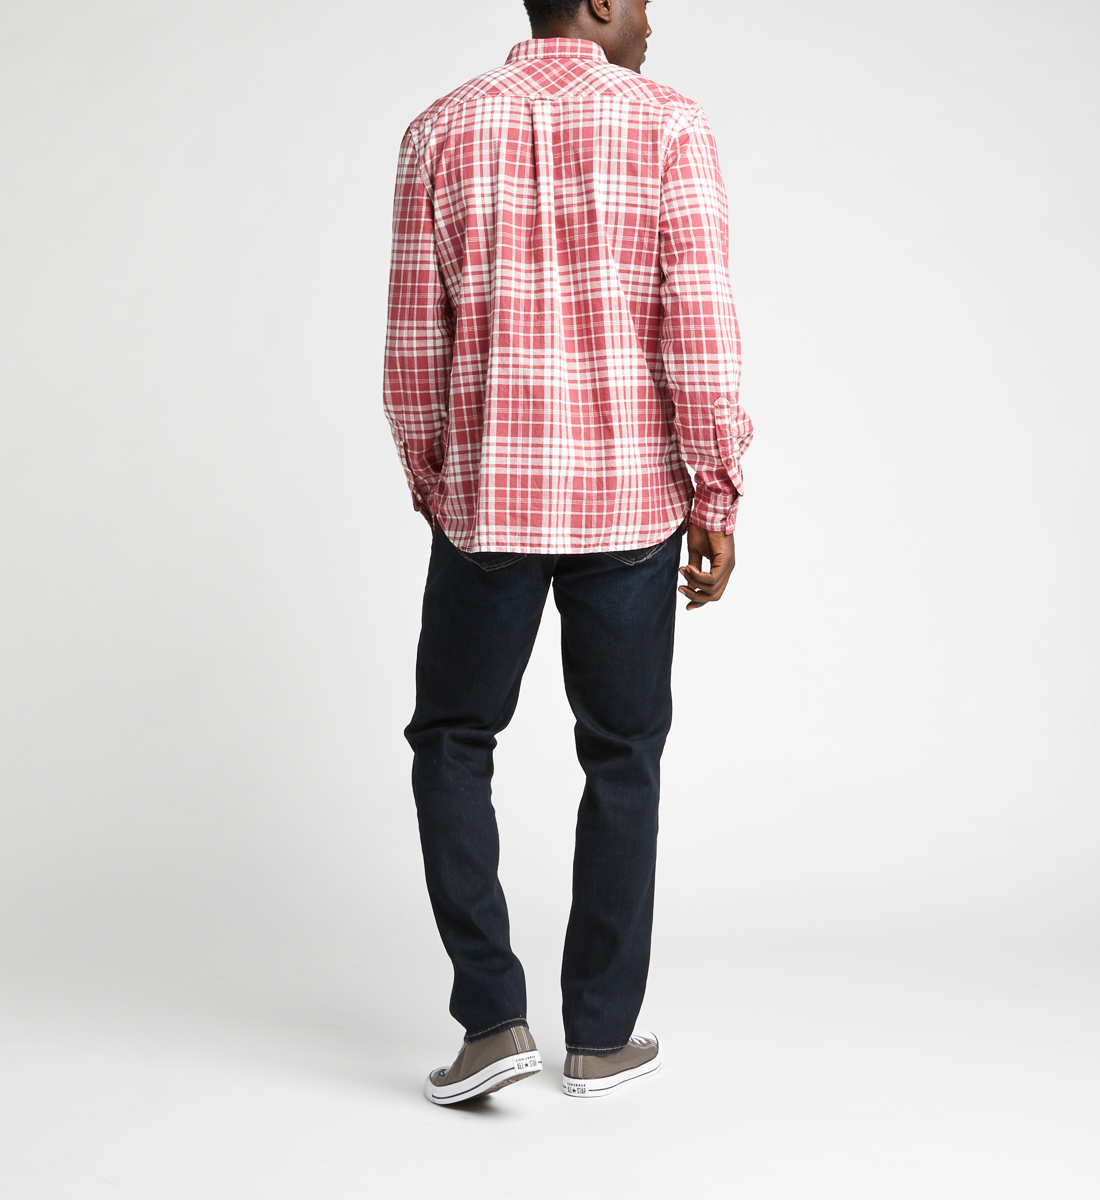 Charly Long-Sleeve Plaid Button-Down Shirt,Red Side